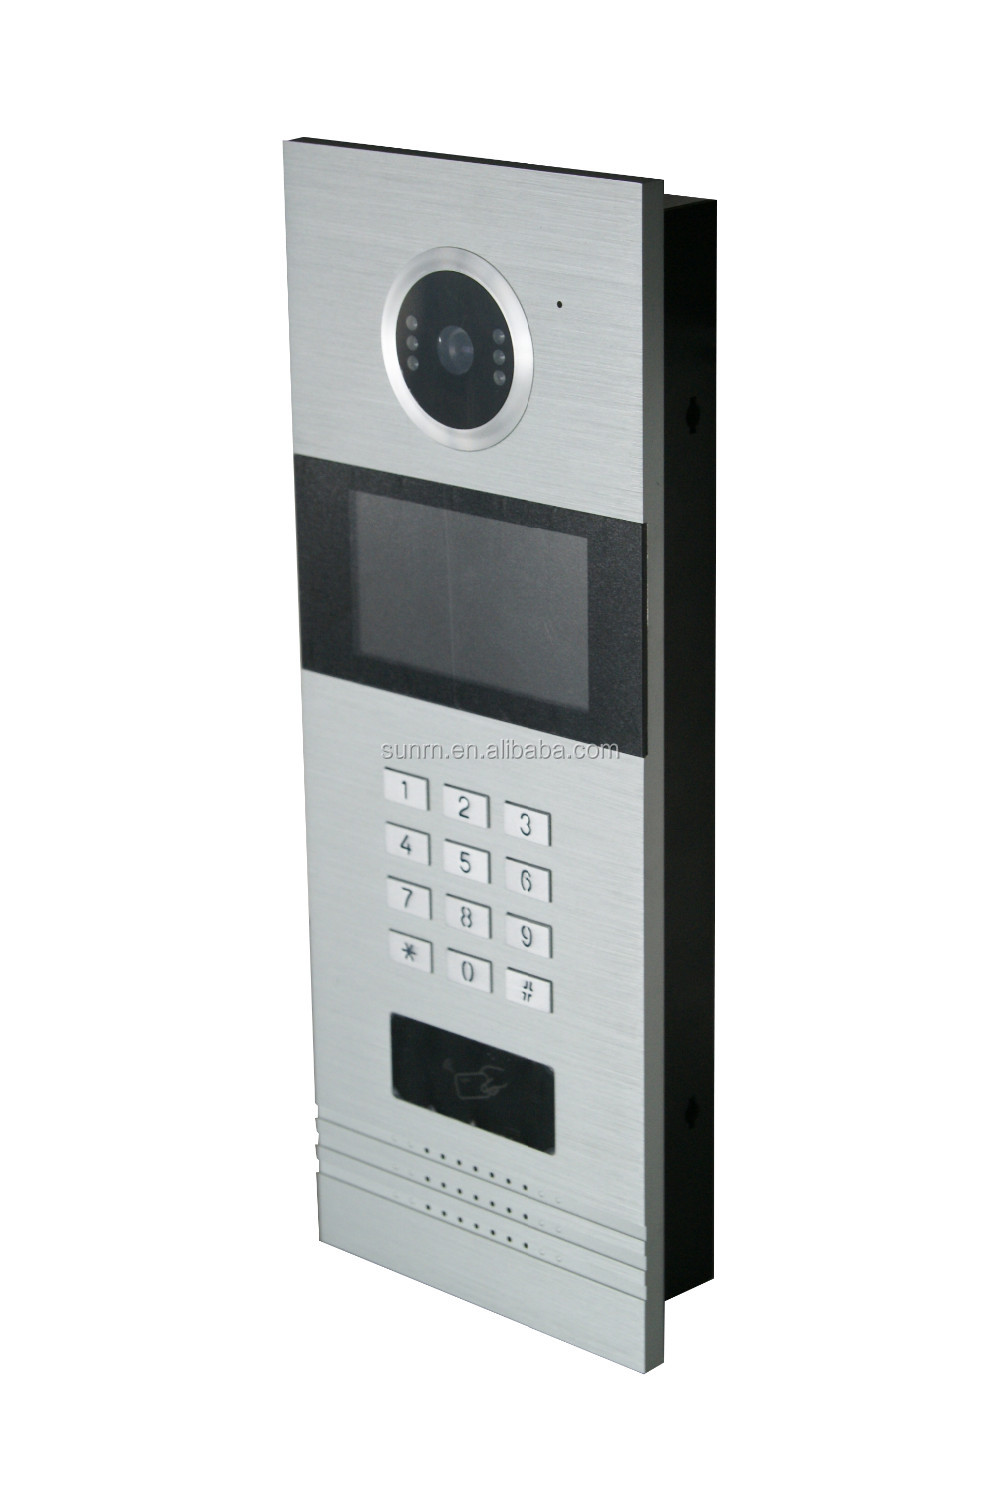 Apartment Building Entry Systems apartment building intercom system, apartment building intercom